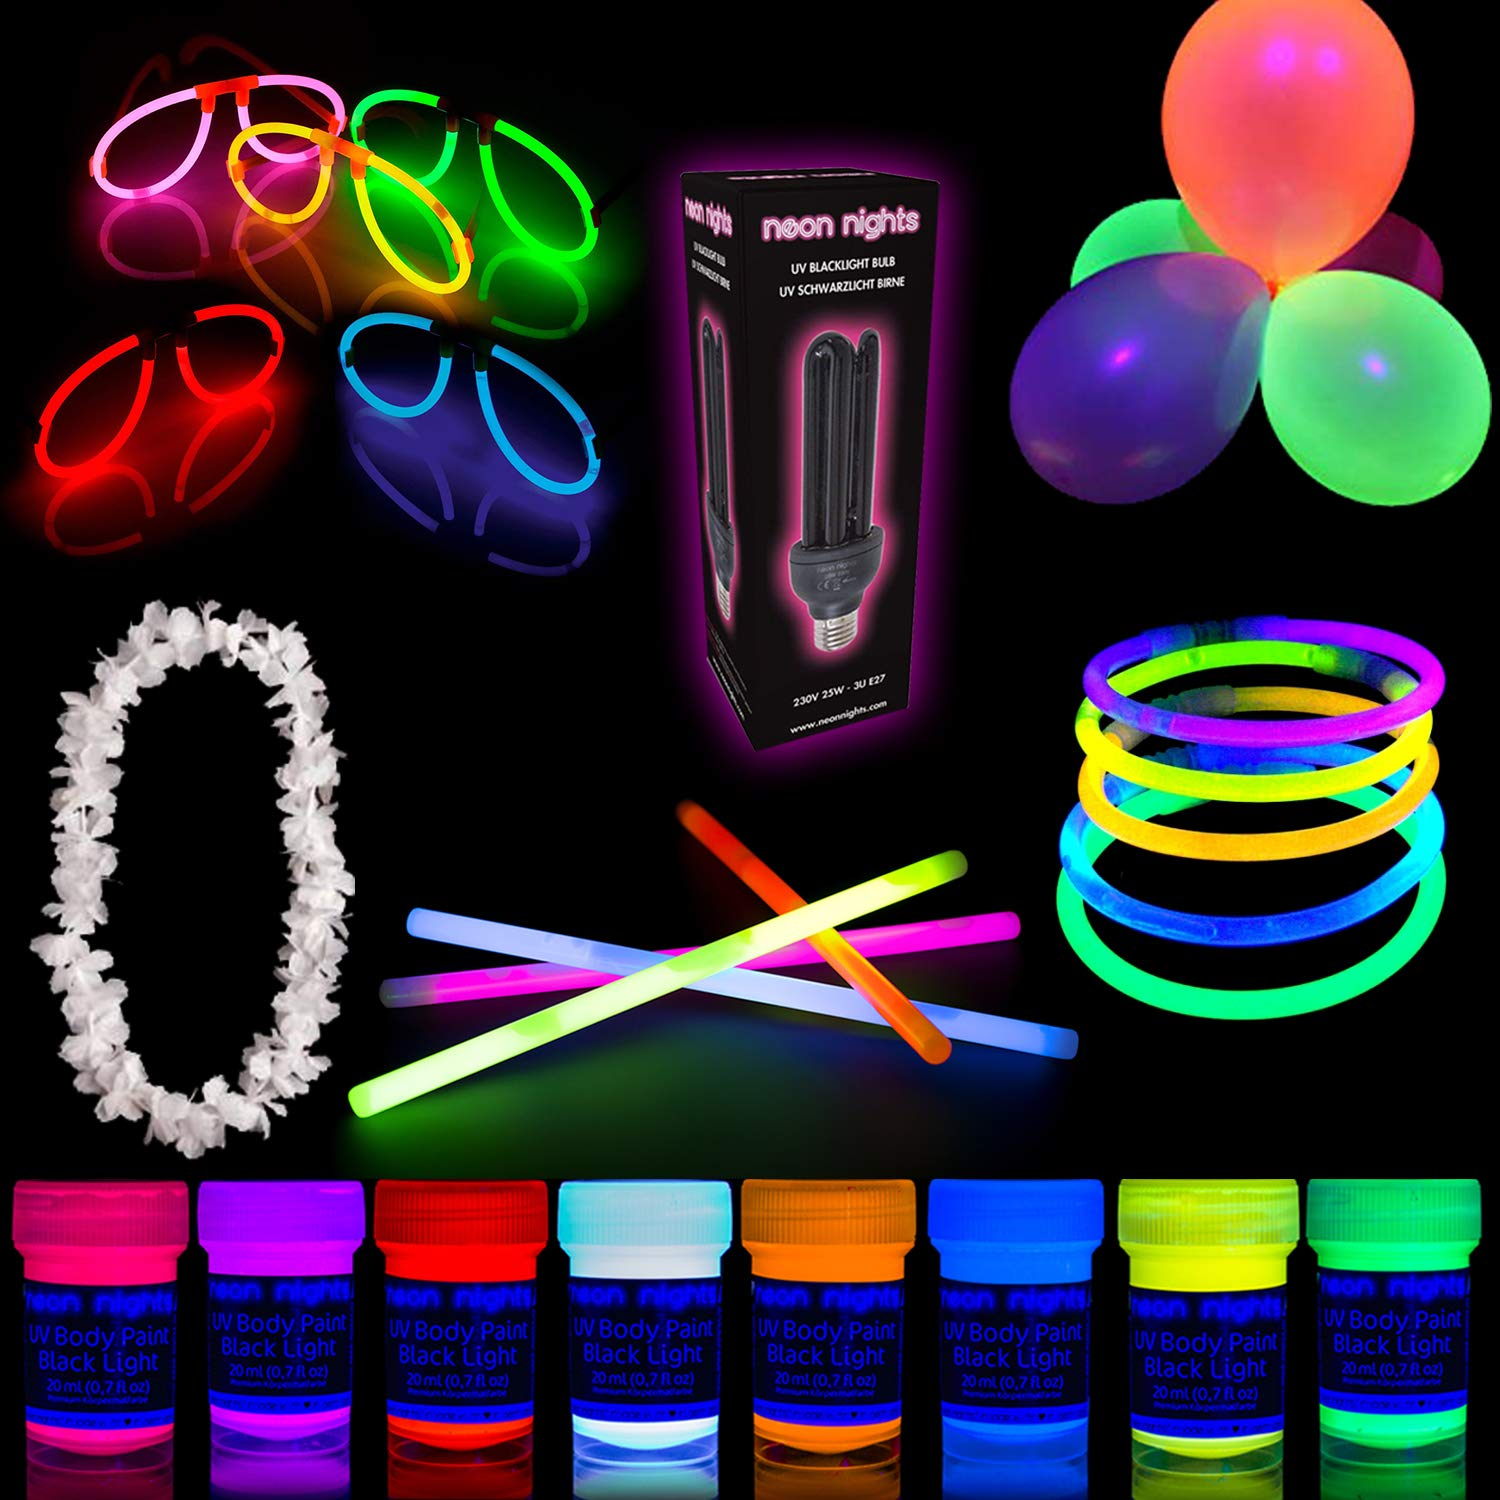 Party Set [M] neon nights Fun-Pack 20 Pieces with UV Body Paint Glow Paints + Black Light Bulb + Glow Sticks | Party Supplies and Decoration Box